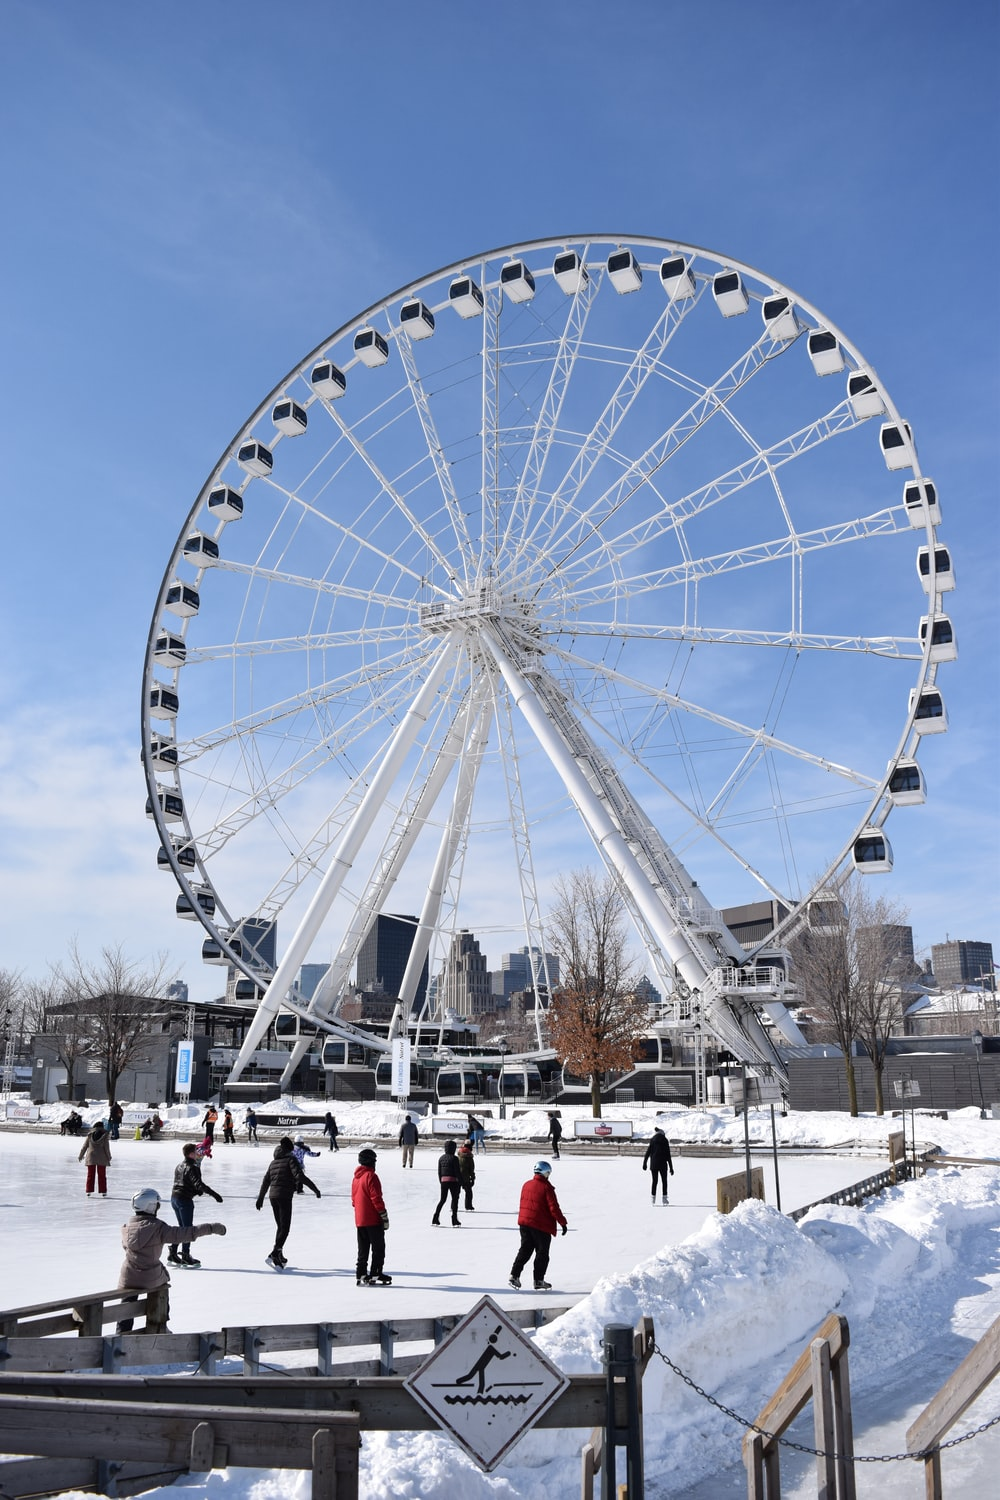 people on ice skating near Ferris wheel during day